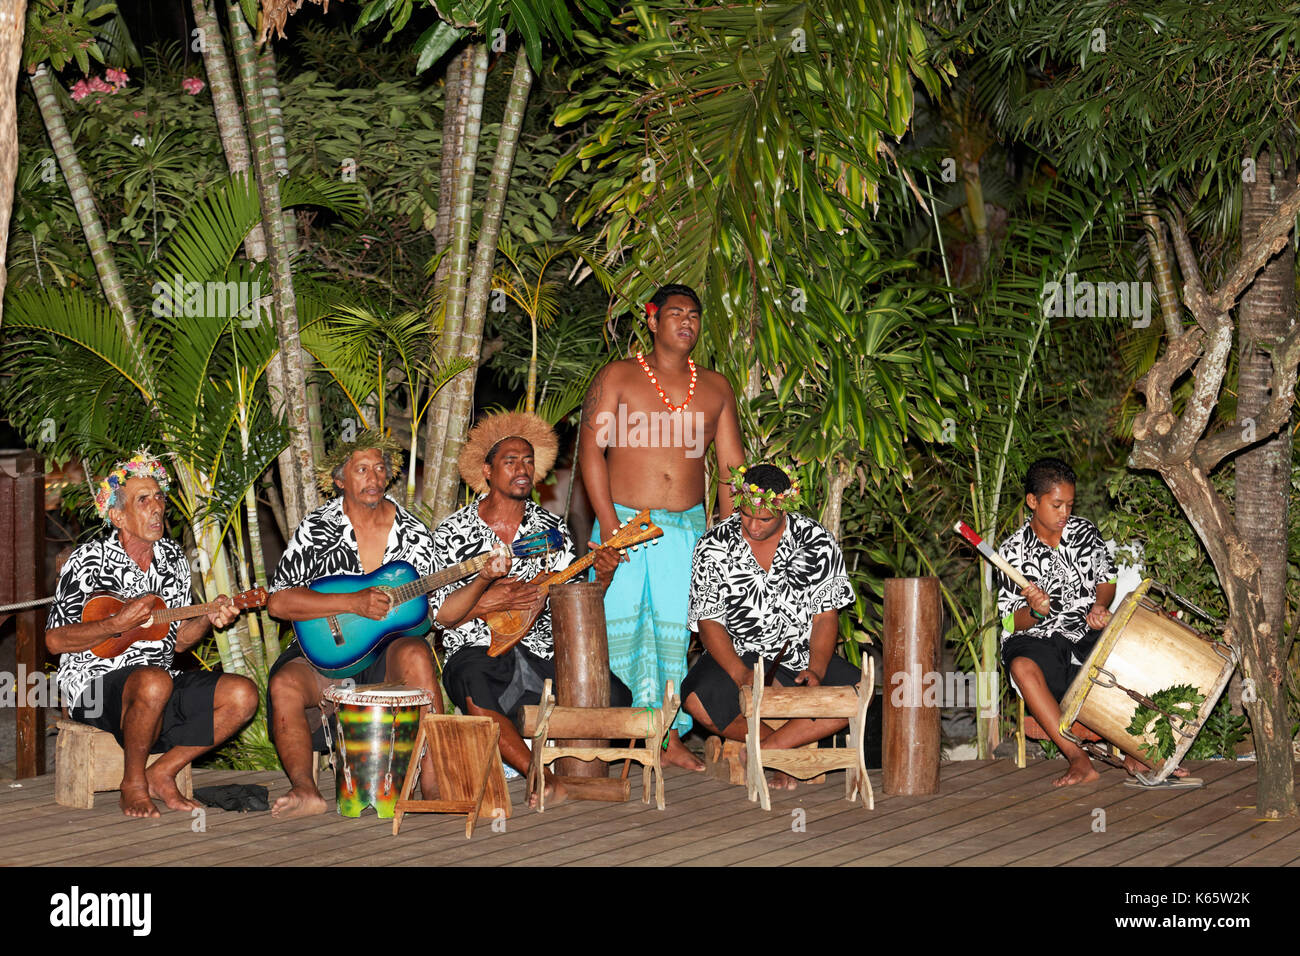 Traditional music band under palm trees, musicians, Bora Bora island, society islands, French Polynesia - Stock Image